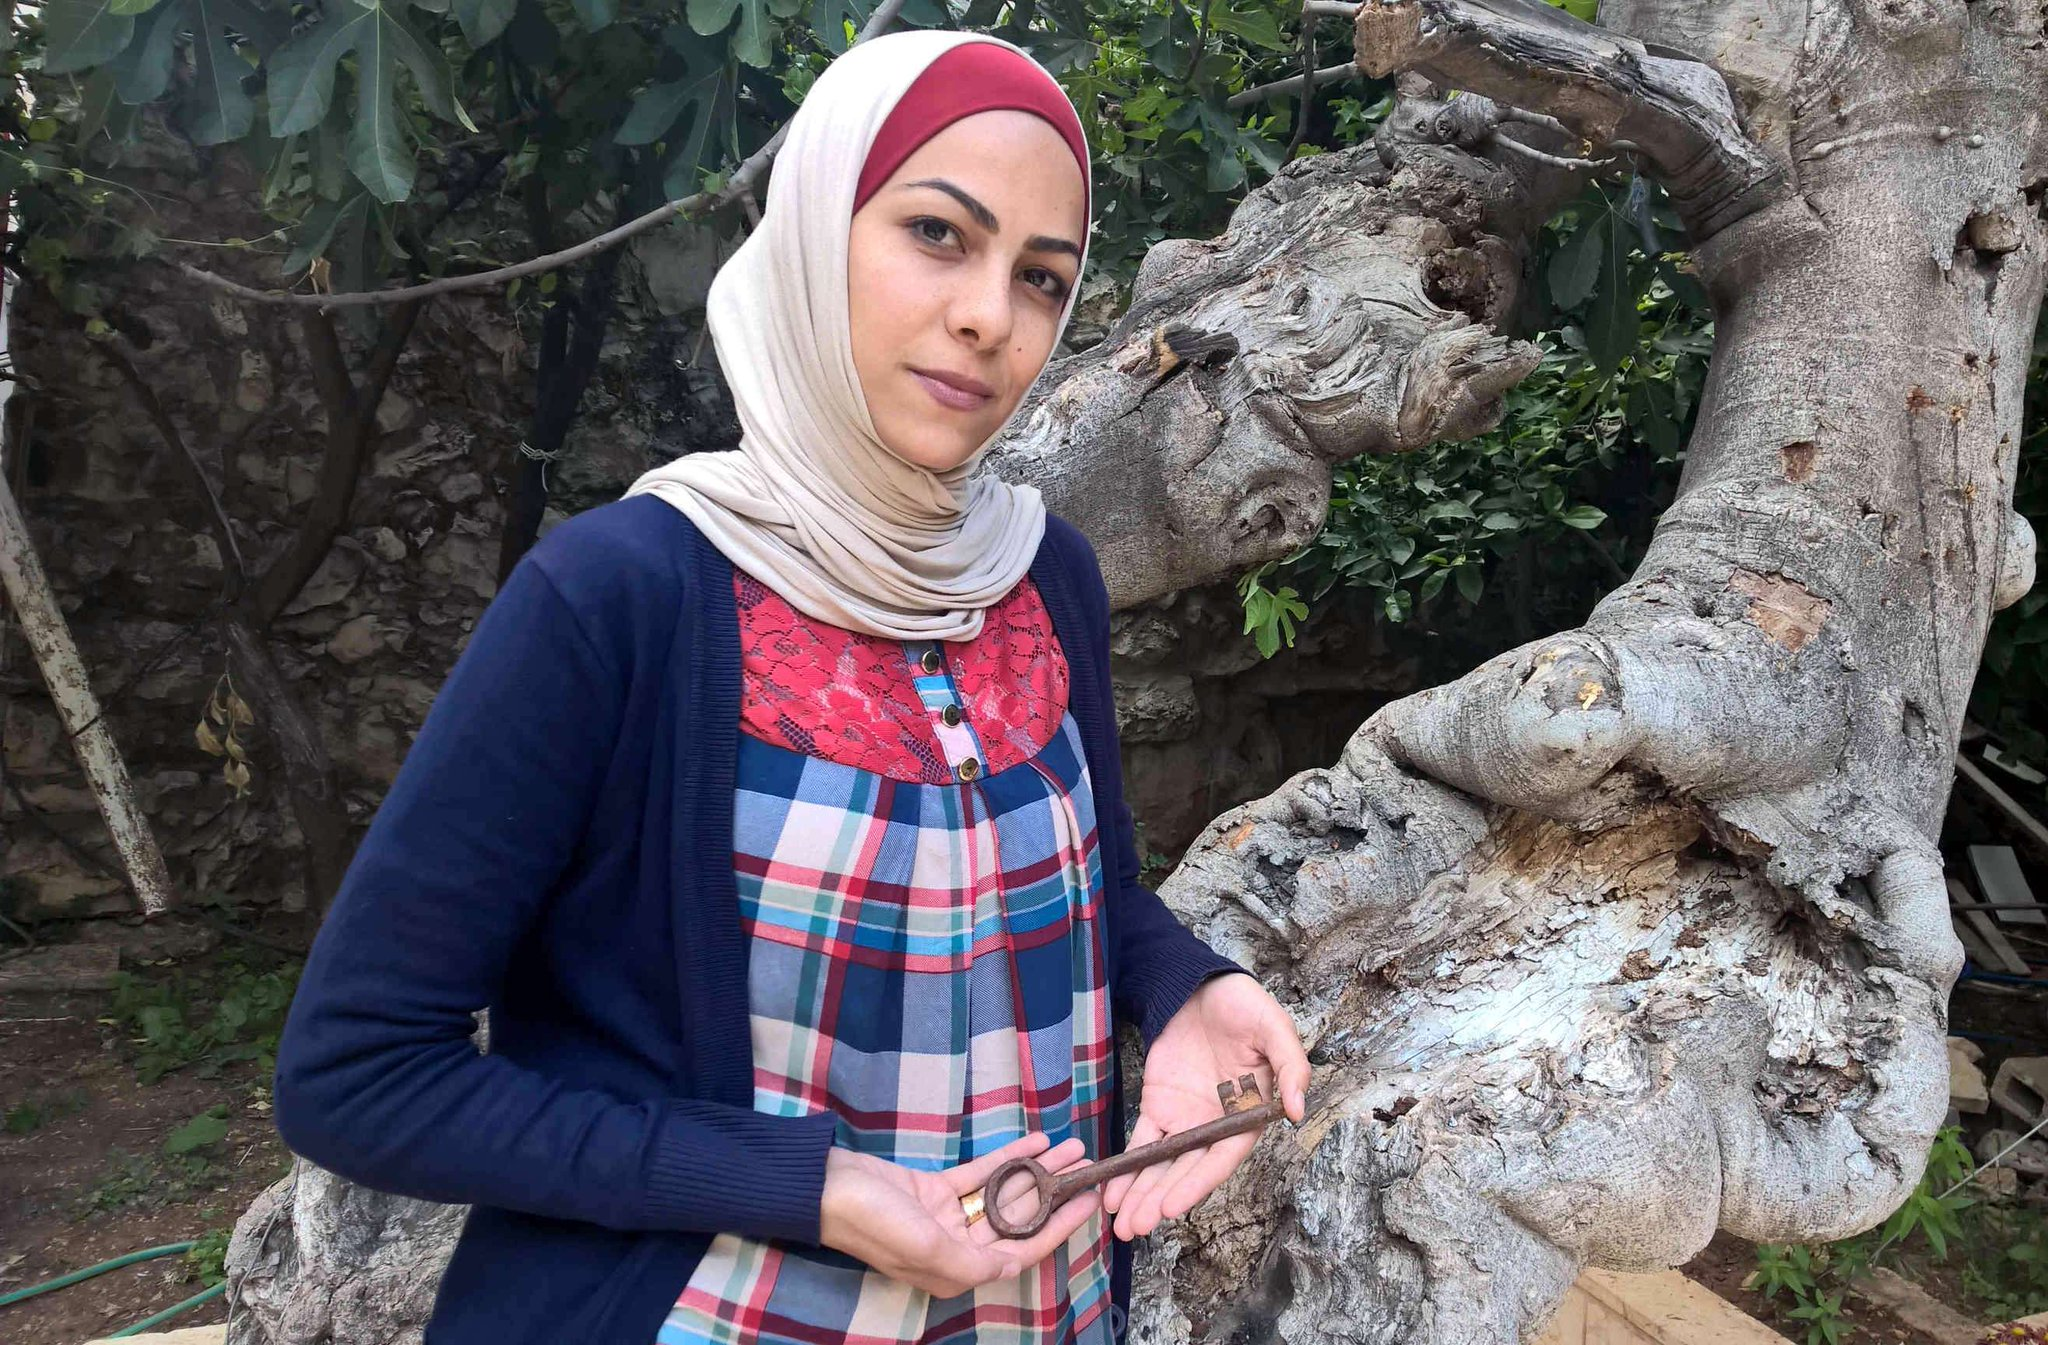 The Nakba, 70 years later: What young Palestinians hope for the future https://t.co/HBWeESnvJN #Nakba70 https://t.co/XraAgfQhML